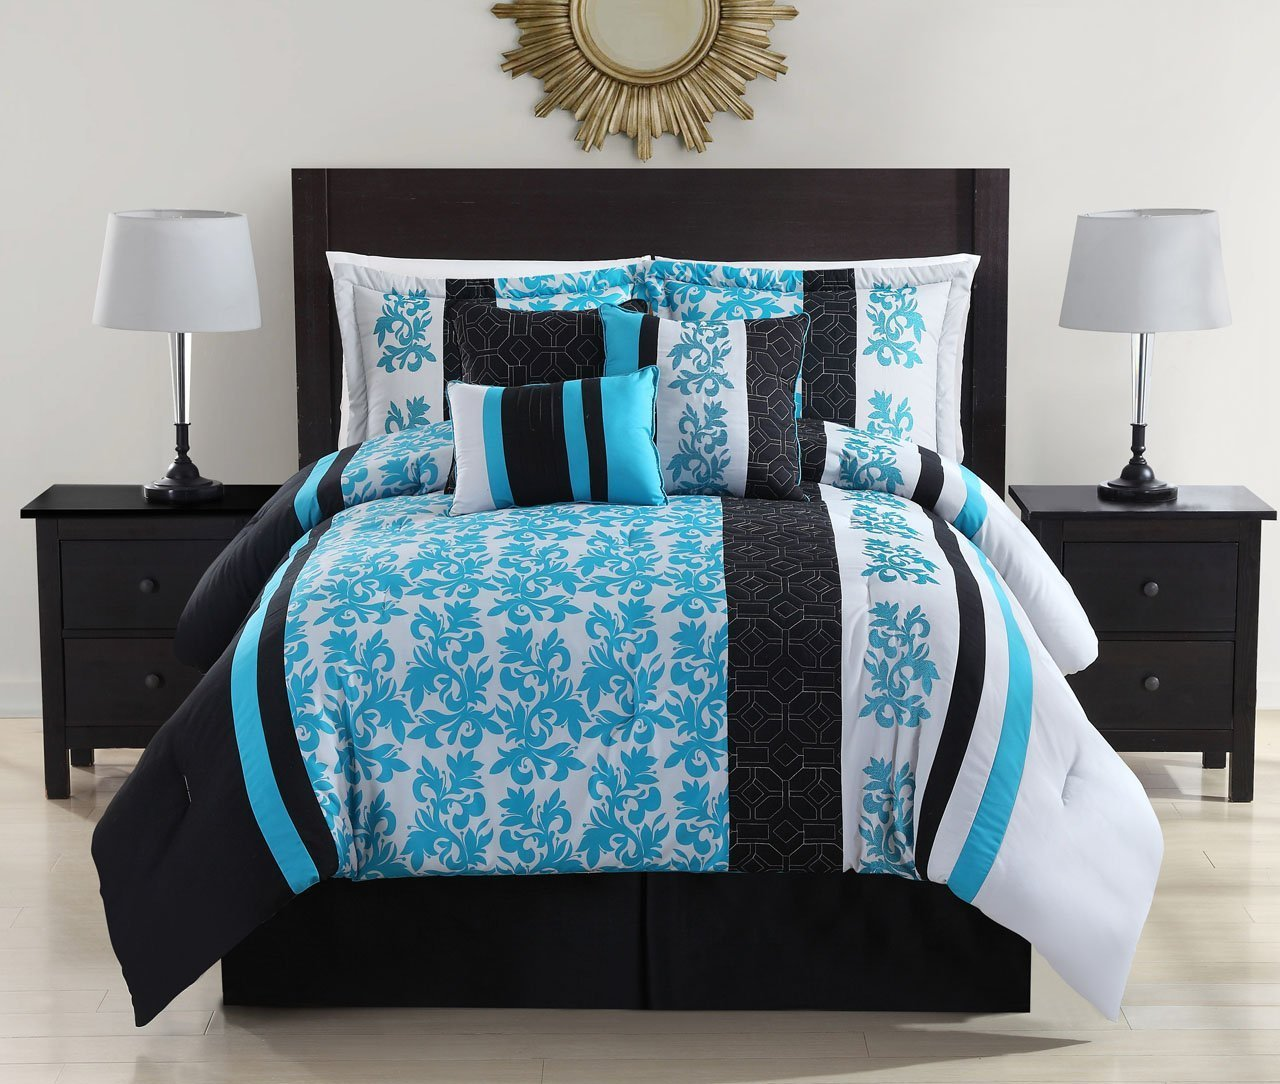 Getting Started With Your Turquoise Black And White Palette Bedding S Personality